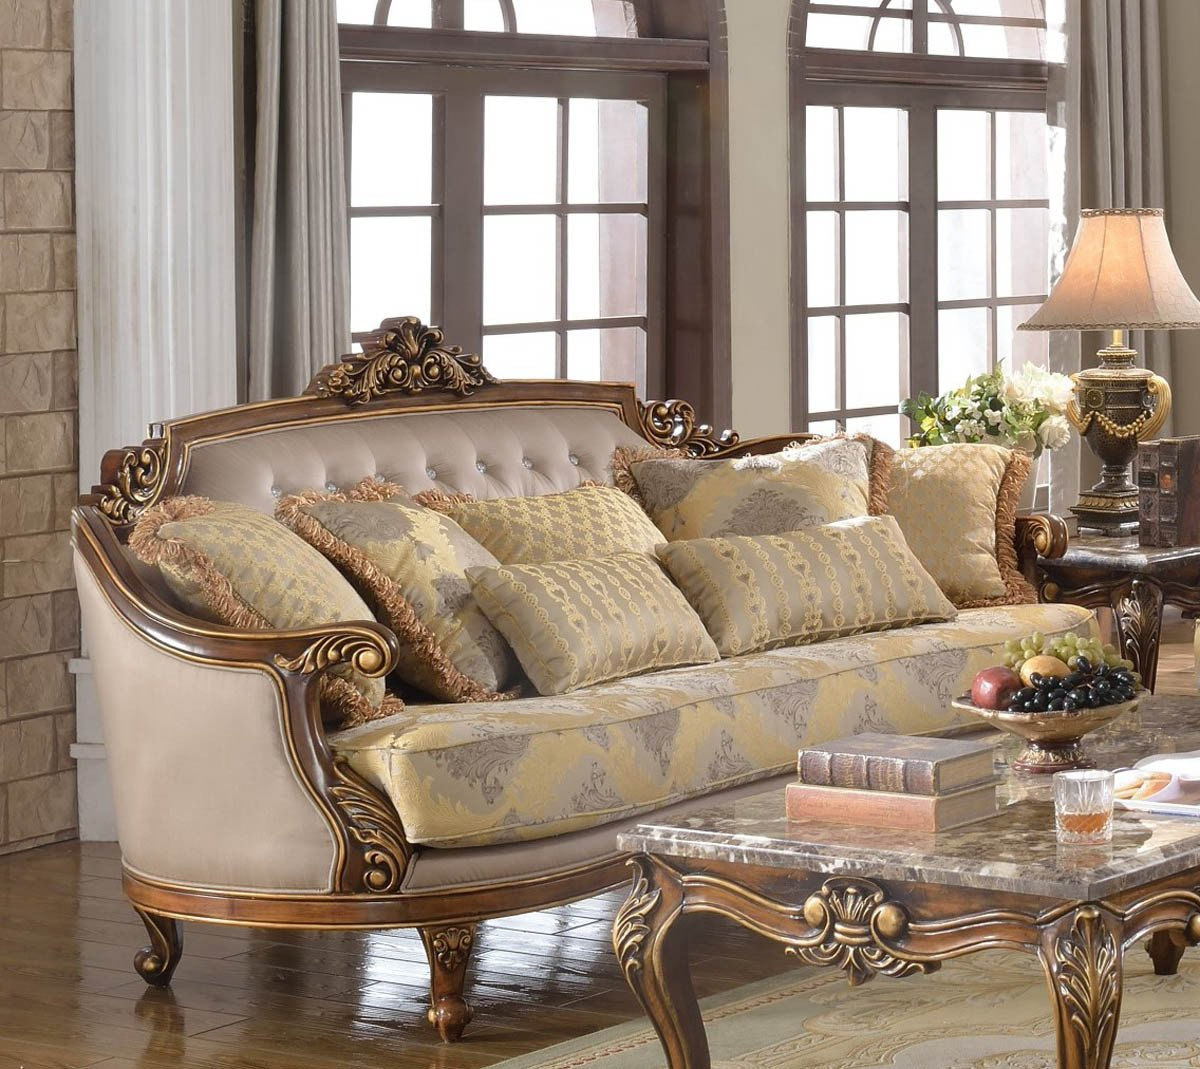 Comfortable Living Room Victorian Awesome Fontaine Traditional Living Room Set sofa Love Seat Chair Exposed Wood Victorian Style